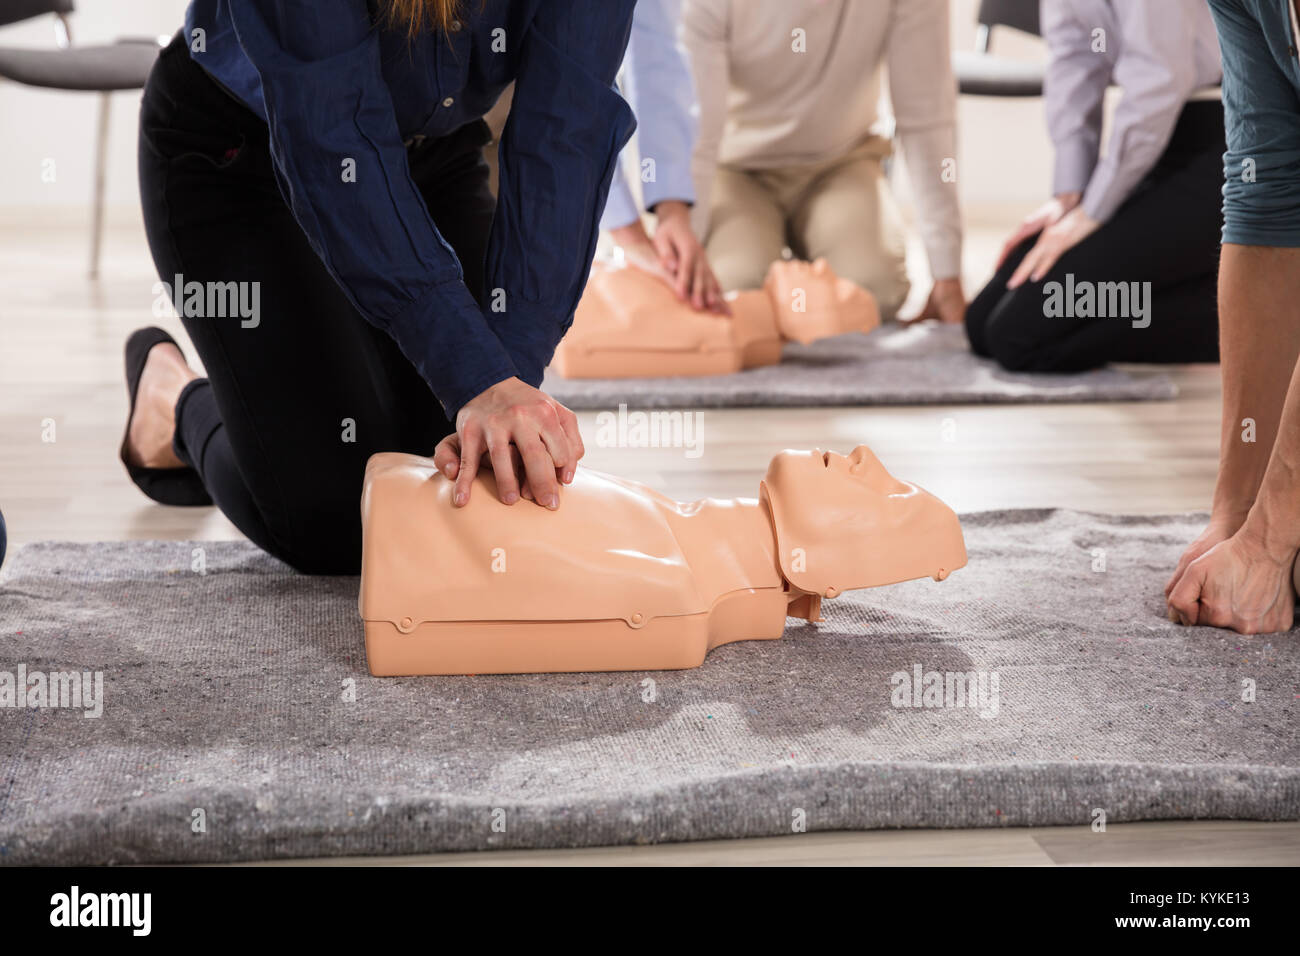 Young Students Practicing CPR Chest Compression On Dummy - Stock Image